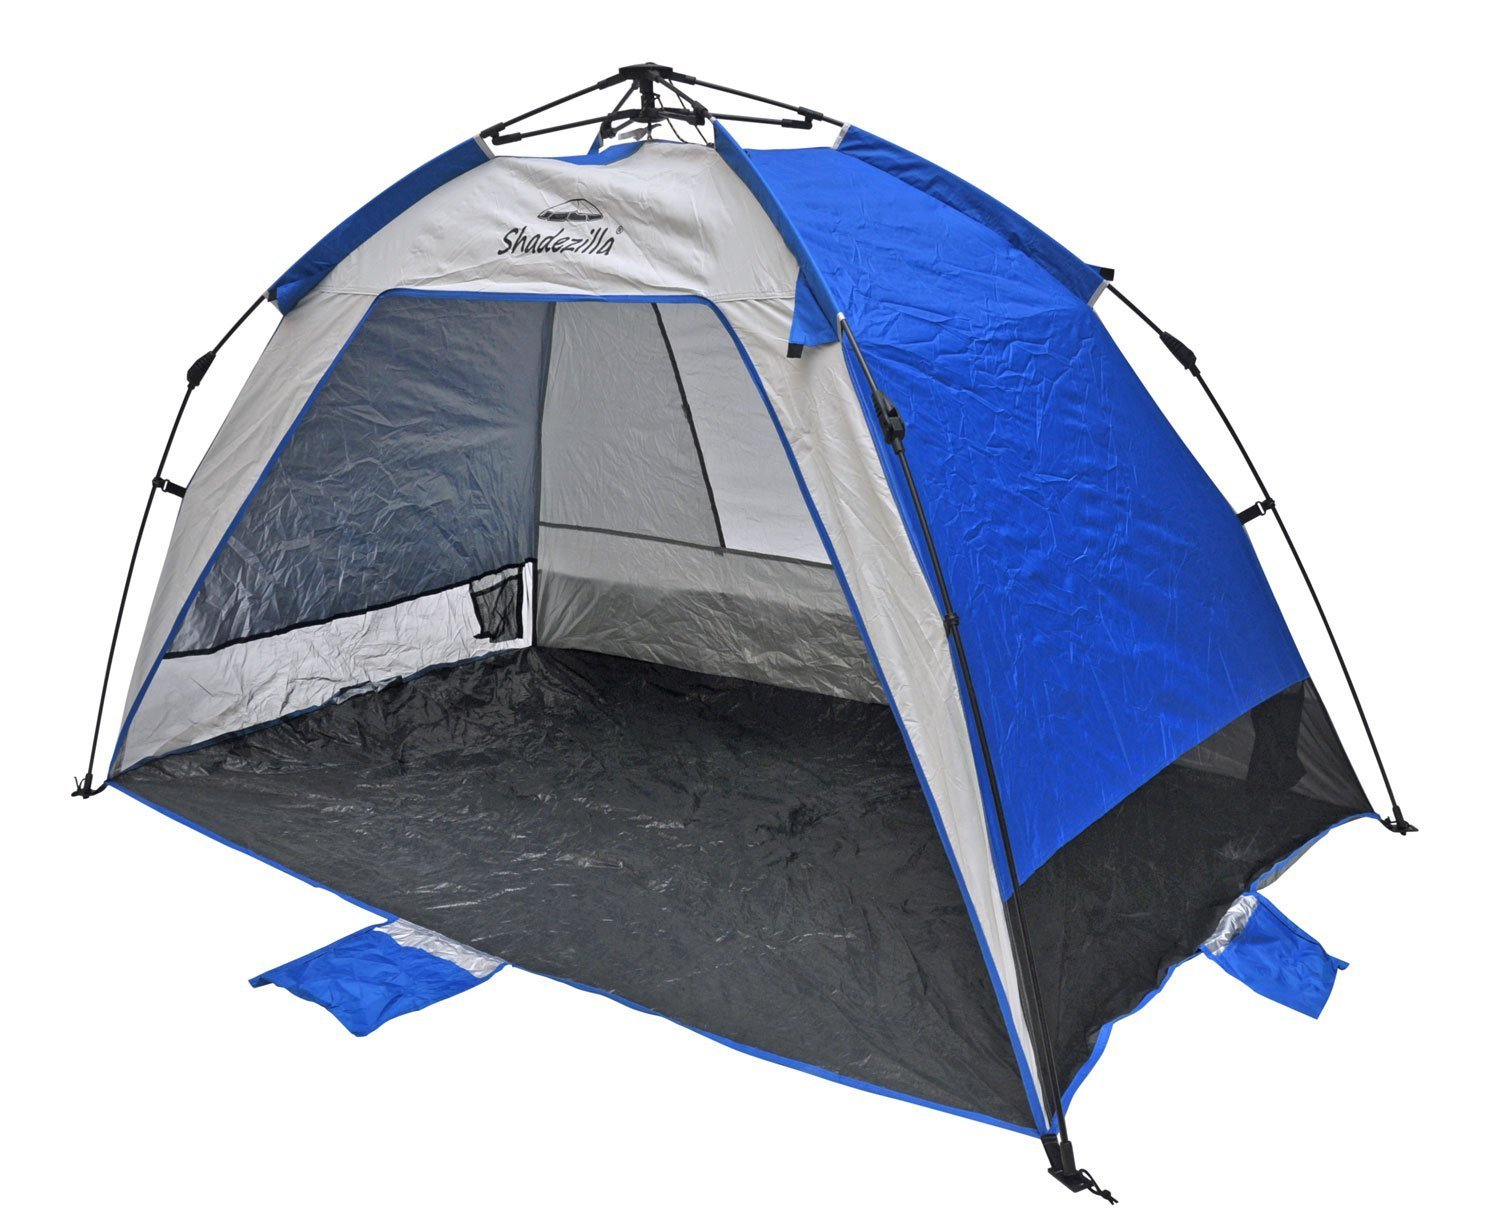 Shadezilla Deluxe Easy Setup Pop Up Beach Tent